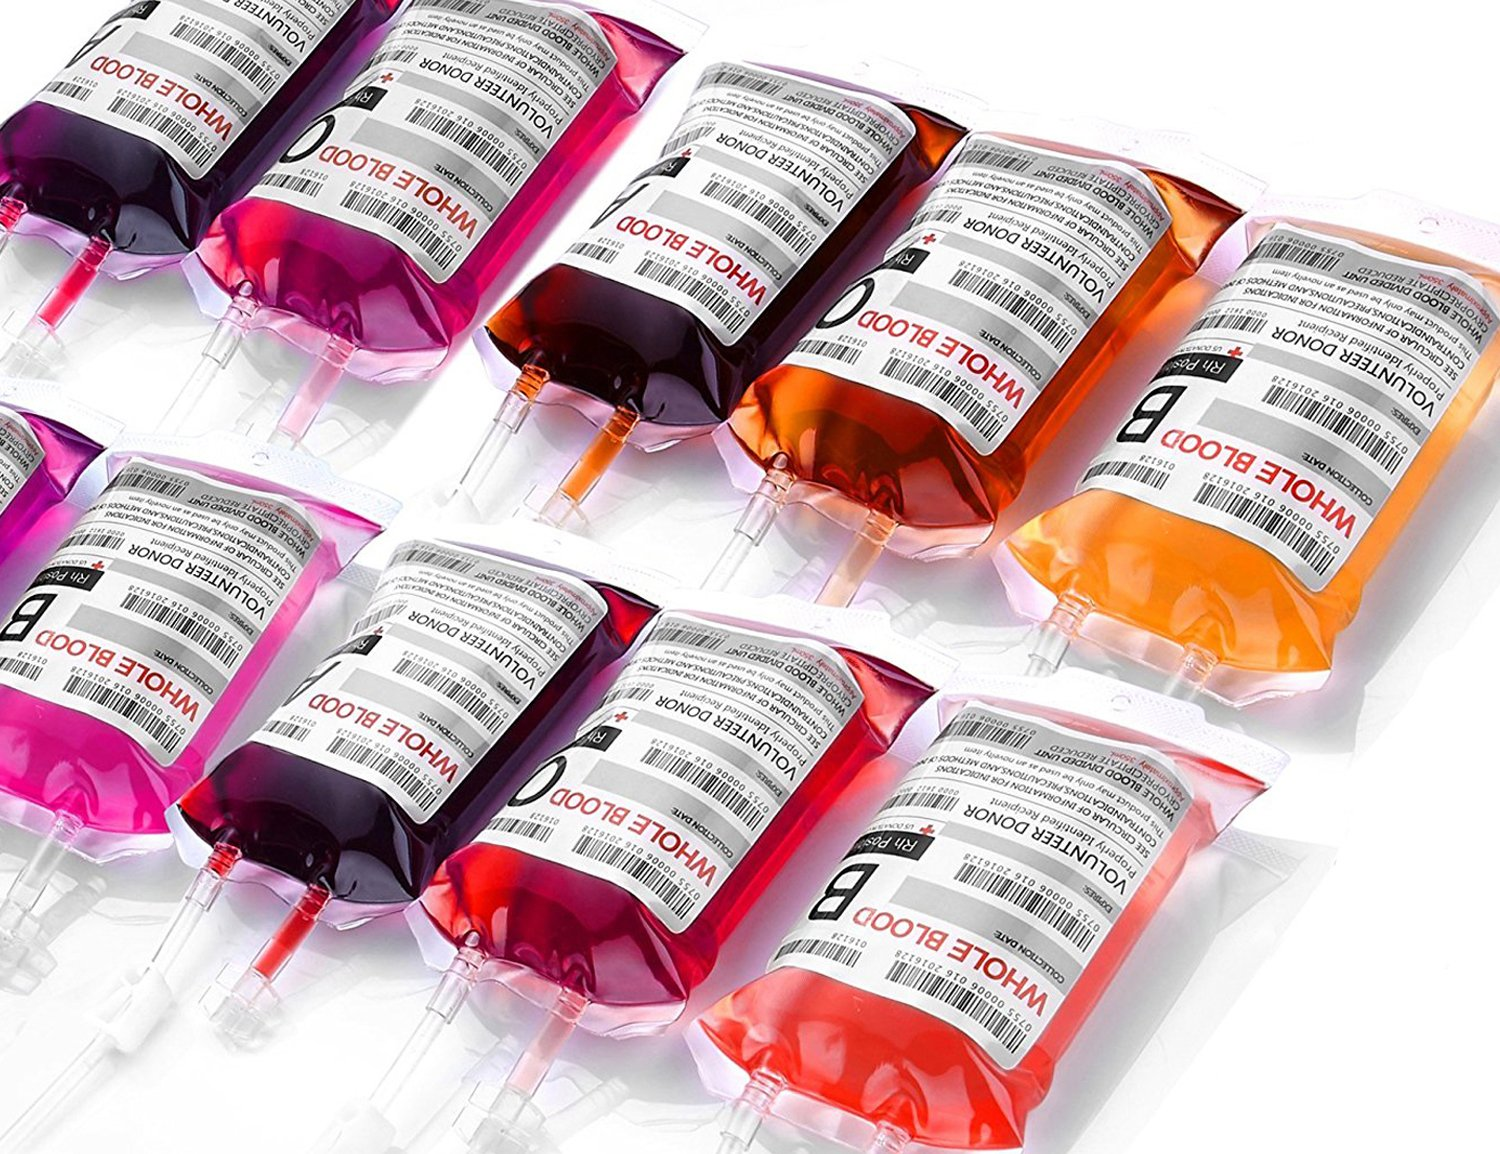 WYNK 10 Pack IV Bags Party Decoration Drink Blood Bags Cups Container 11.5 Fl Oz with Extra Syringe Set of Labels and Clips, Halloween Decorations Party Favors